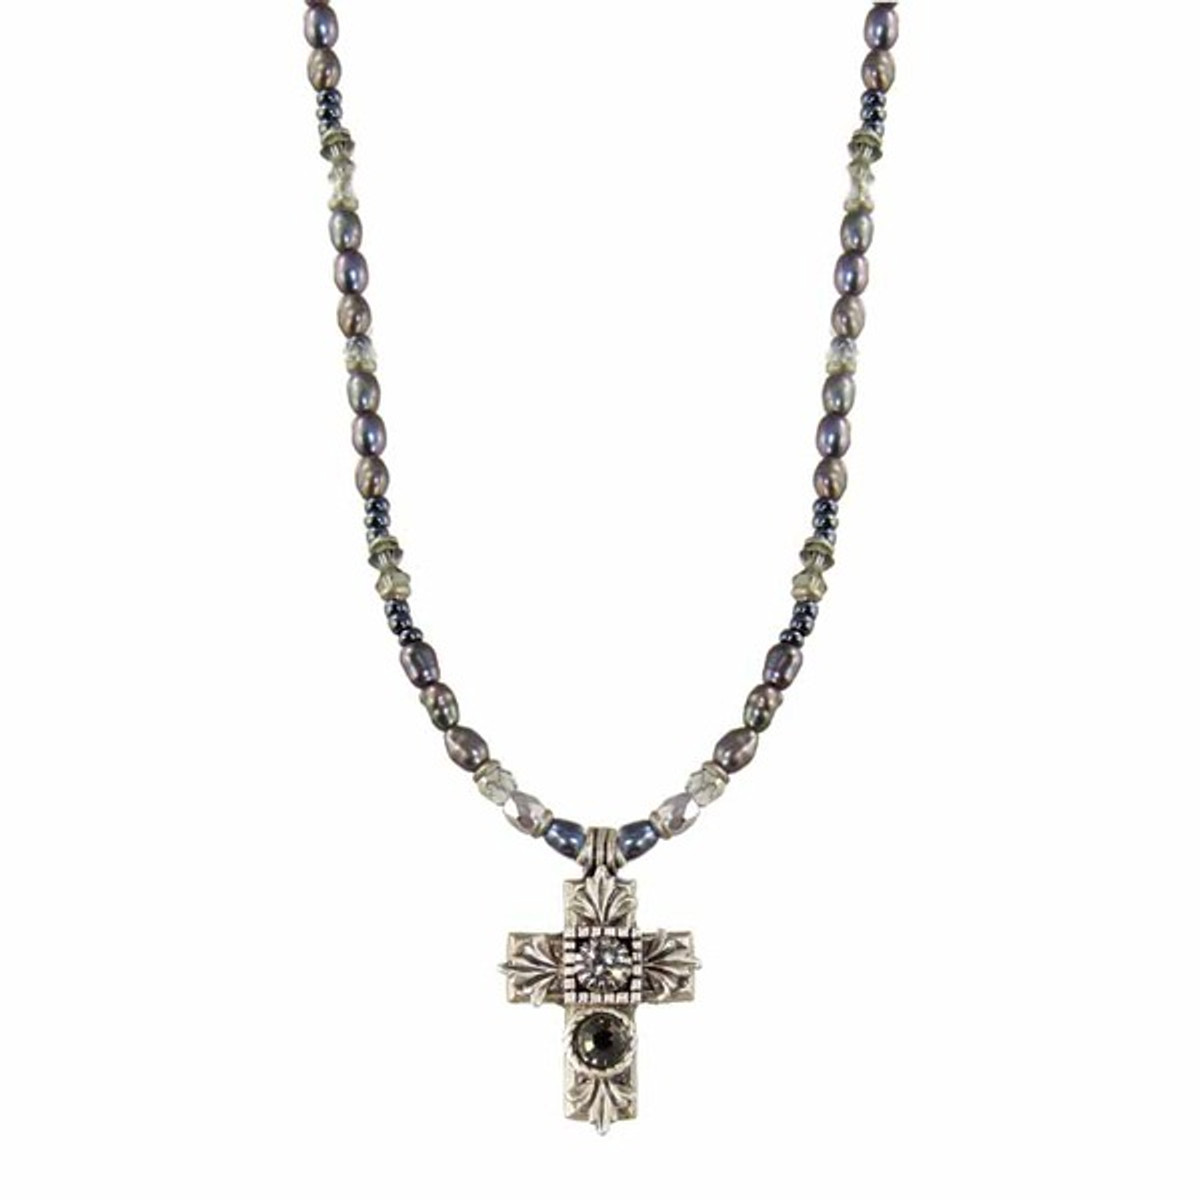 Michal Golan Pearl Chain Cross Necklace